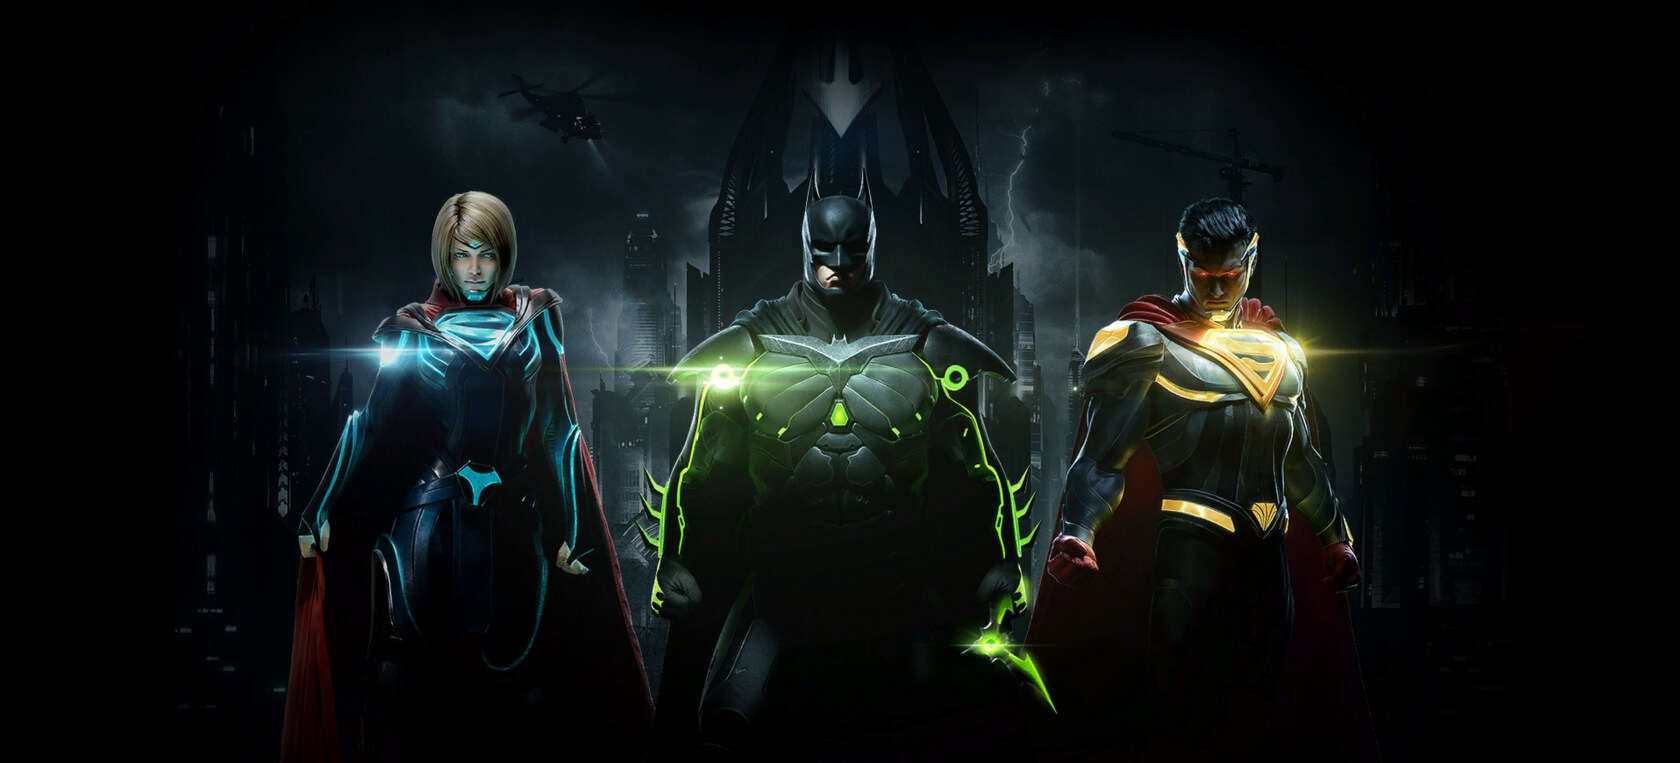 Injustice 2 is coming to PC this fall